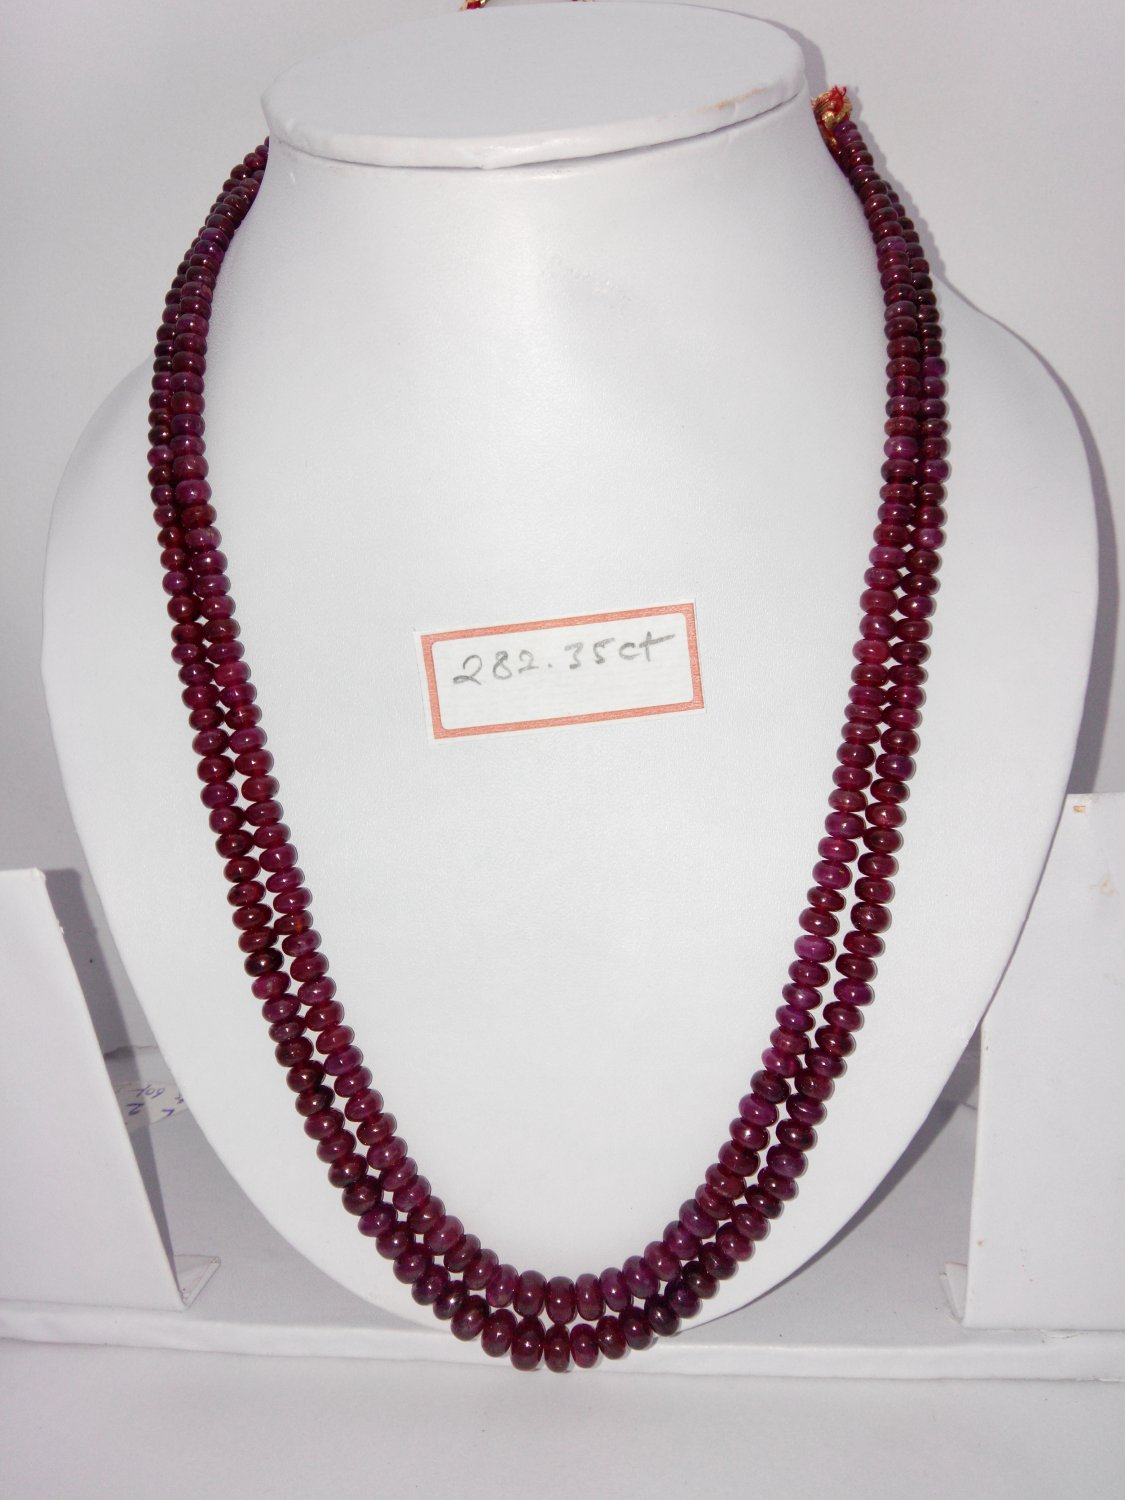 Certified Fissure Filled Ruby necklace of 282.35 cts Fancy Round Beads plane Polish